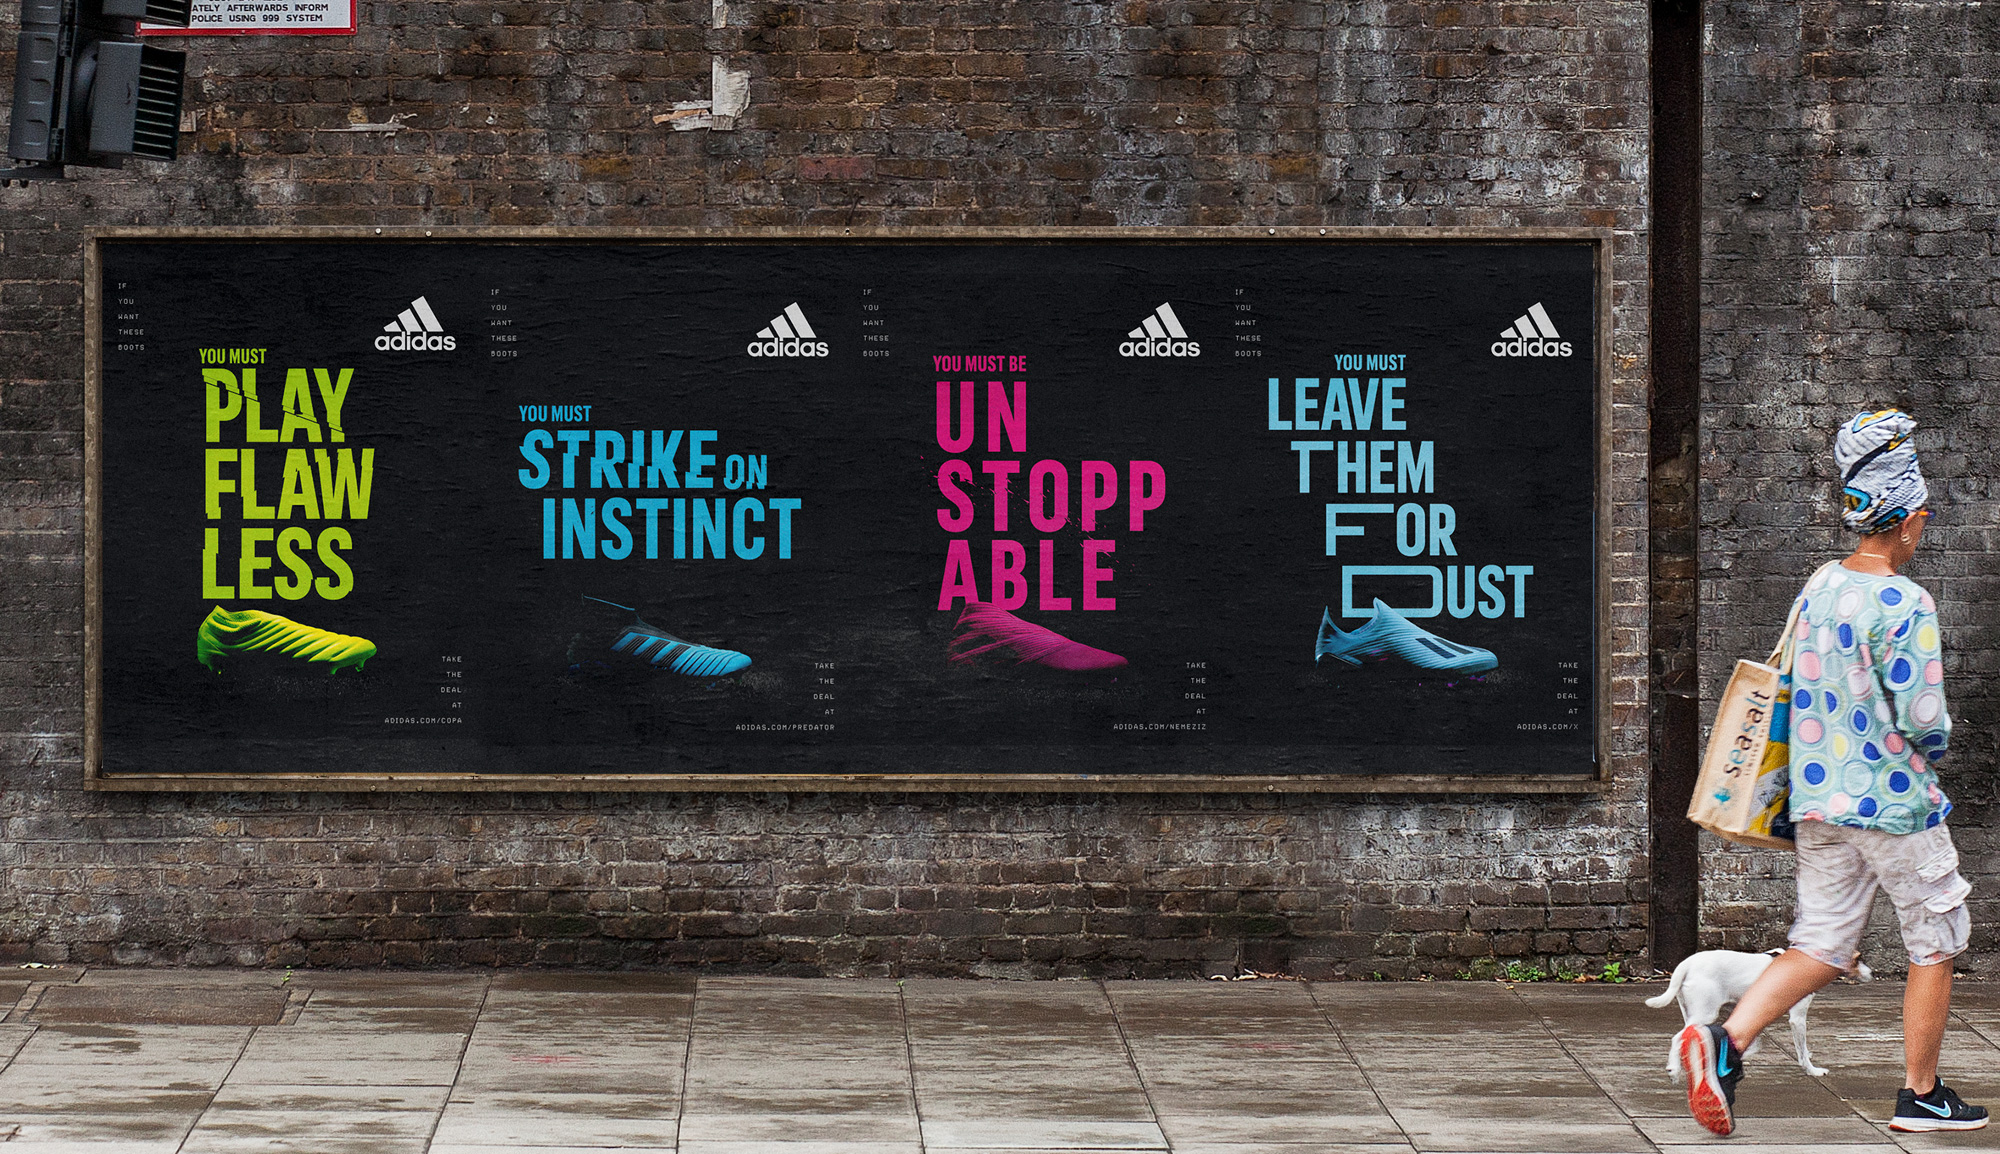 adidas_hardwired_billboard